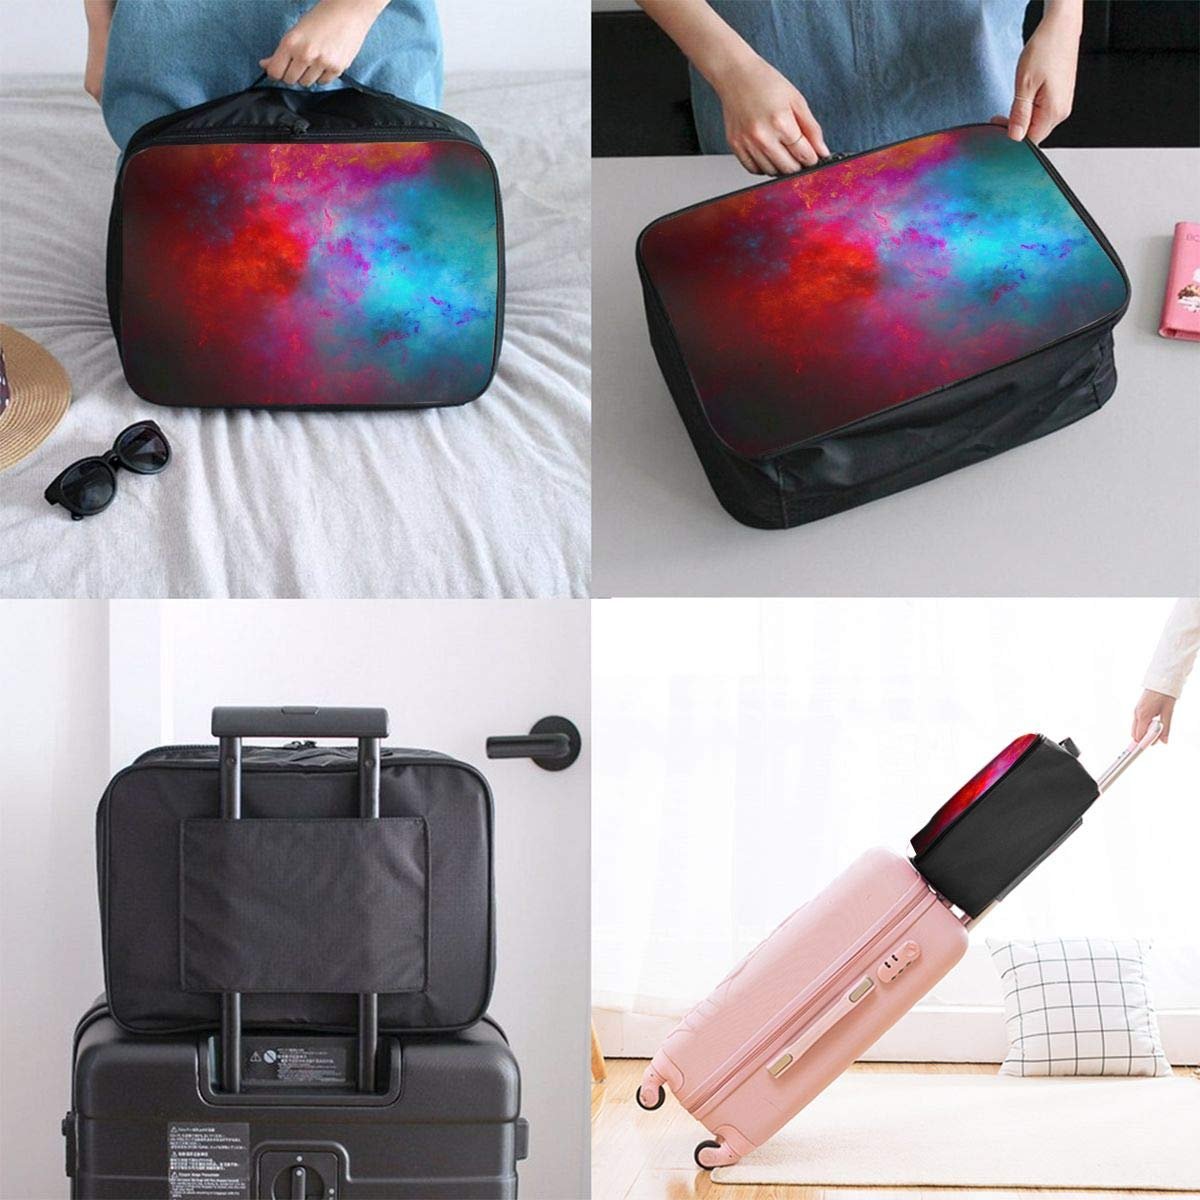 YueLJB Colorful Wallpapers Lightweight Large Capacity Portable Luggage Bag Travel Duffel Bag Storage Carry Luggage Duffle Tote Bag